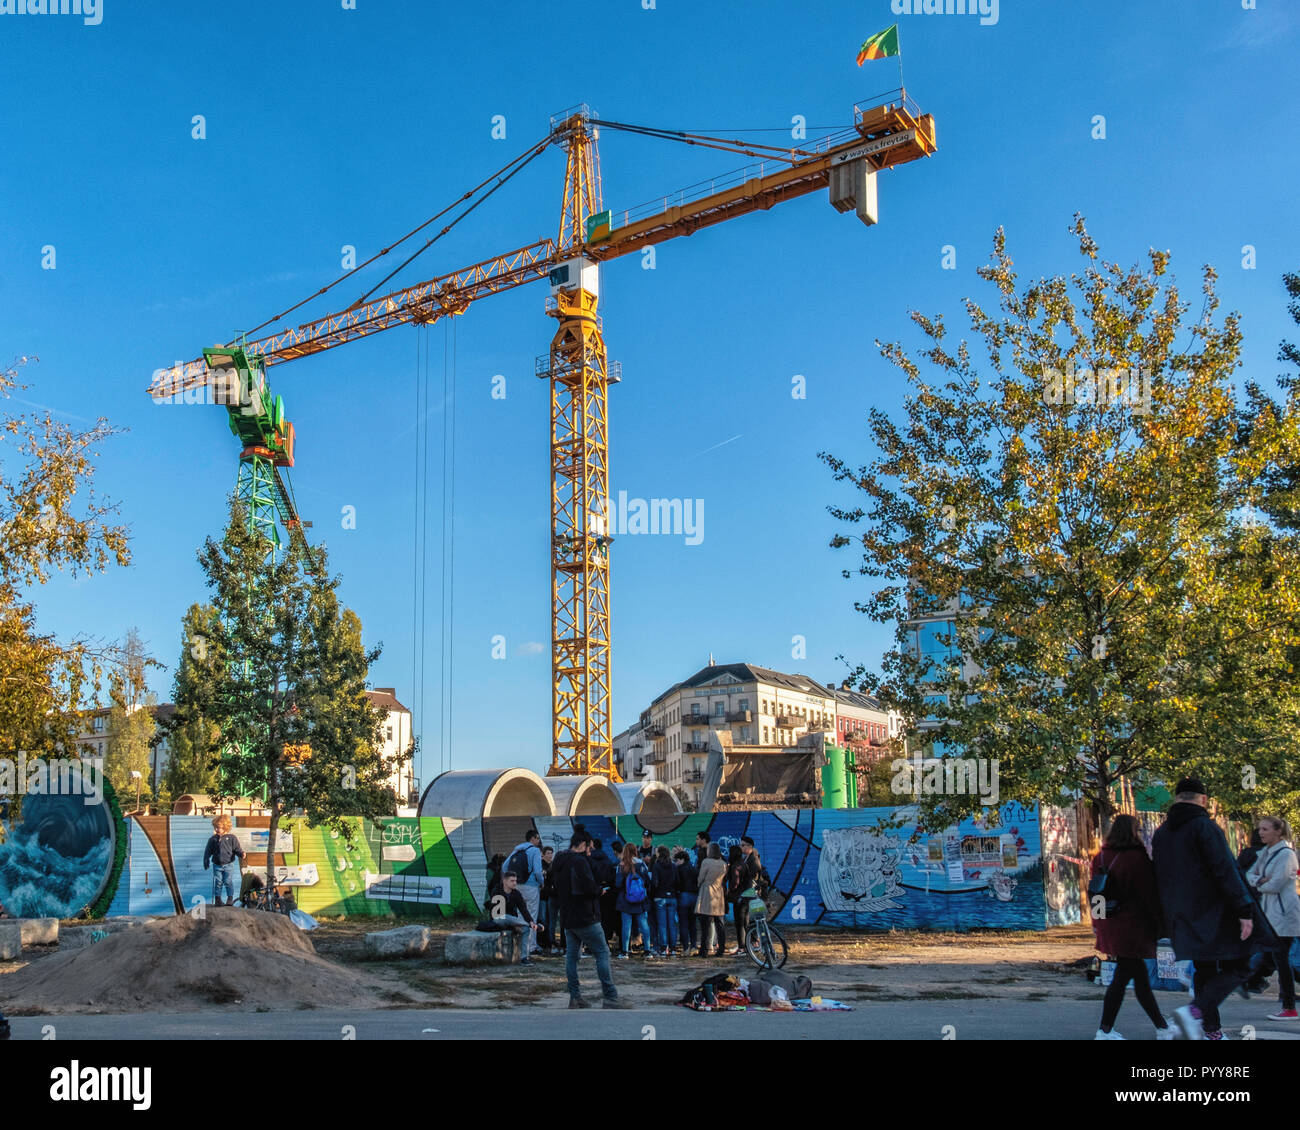 Berlin Mauer Park.The entry point for a tunnel-boring machine that is excavating a 650 metre long storage channel for waste water - Stock Image